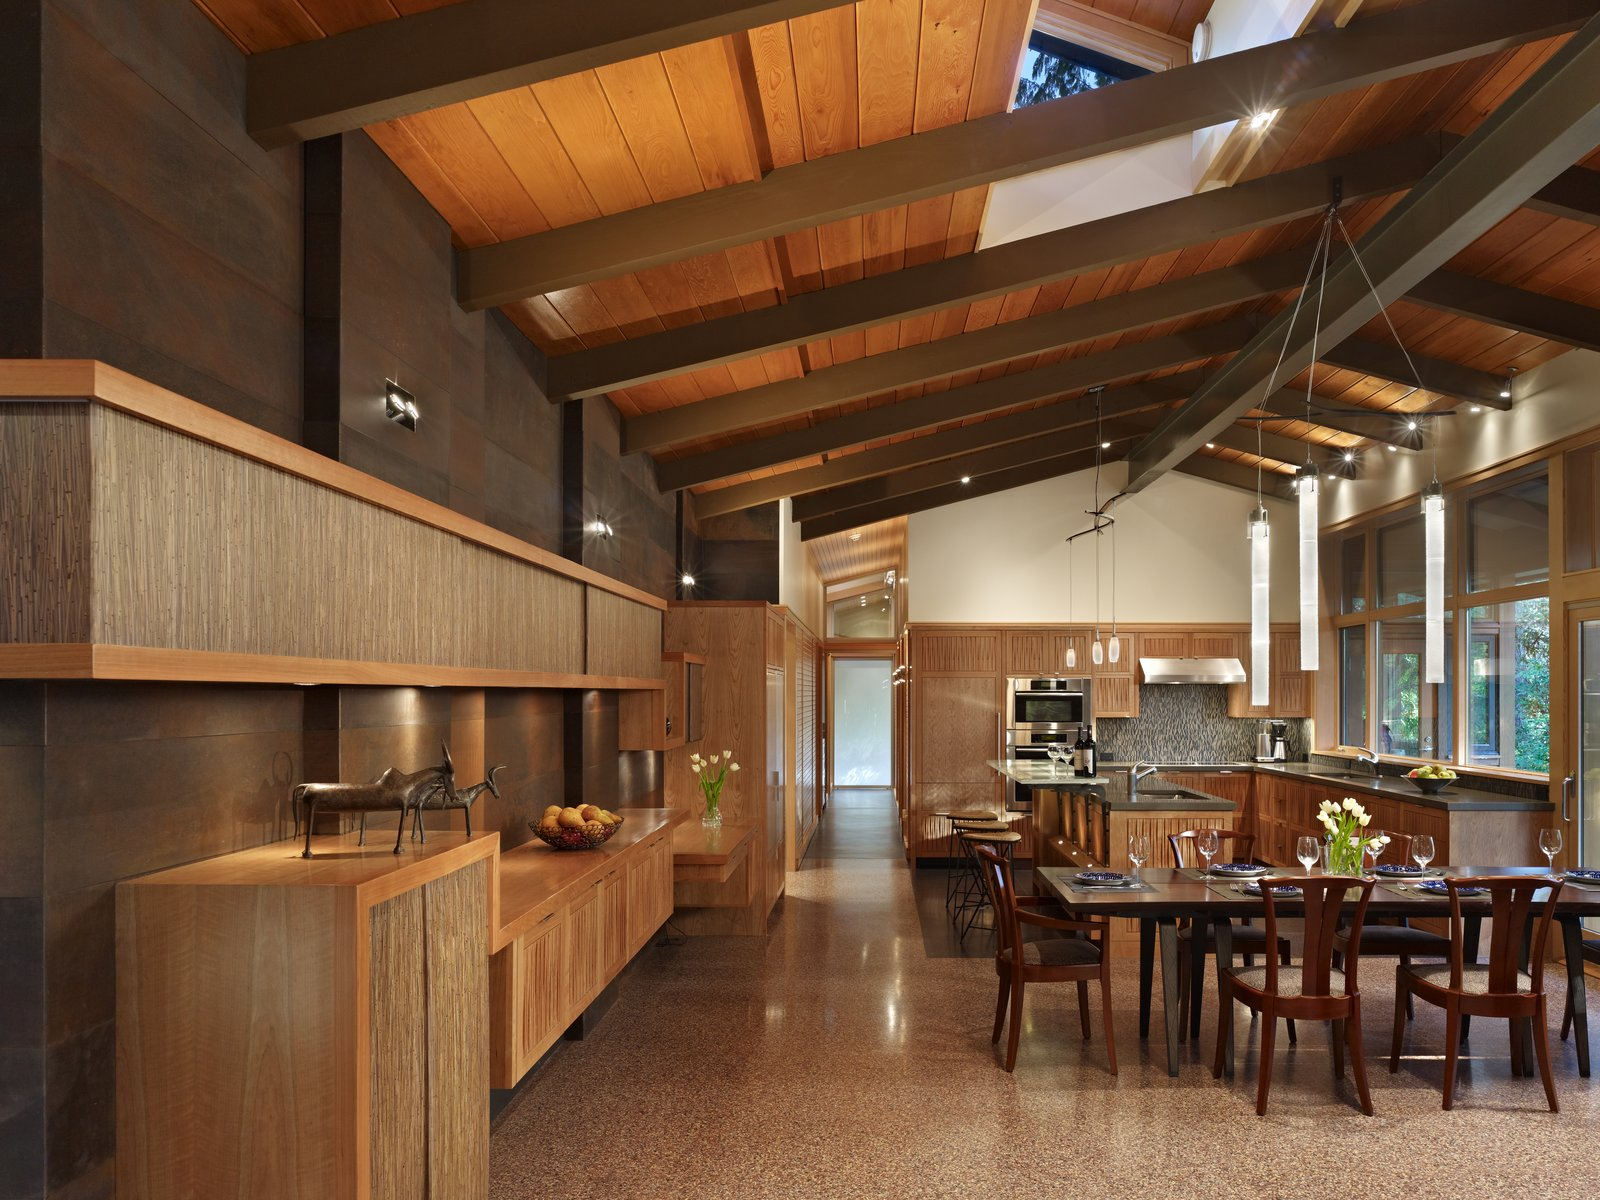 Dining, Table, Pendant, Chair, Terrazzo, Two-Sided, and Ceiling View of dining and kitchen areas with weathered steel wall, cherry cabinets and custom light fixtures.  Best Dining Ceiling Terrazzo Table Photos from Lake  Forest Park Mid Century Renovation